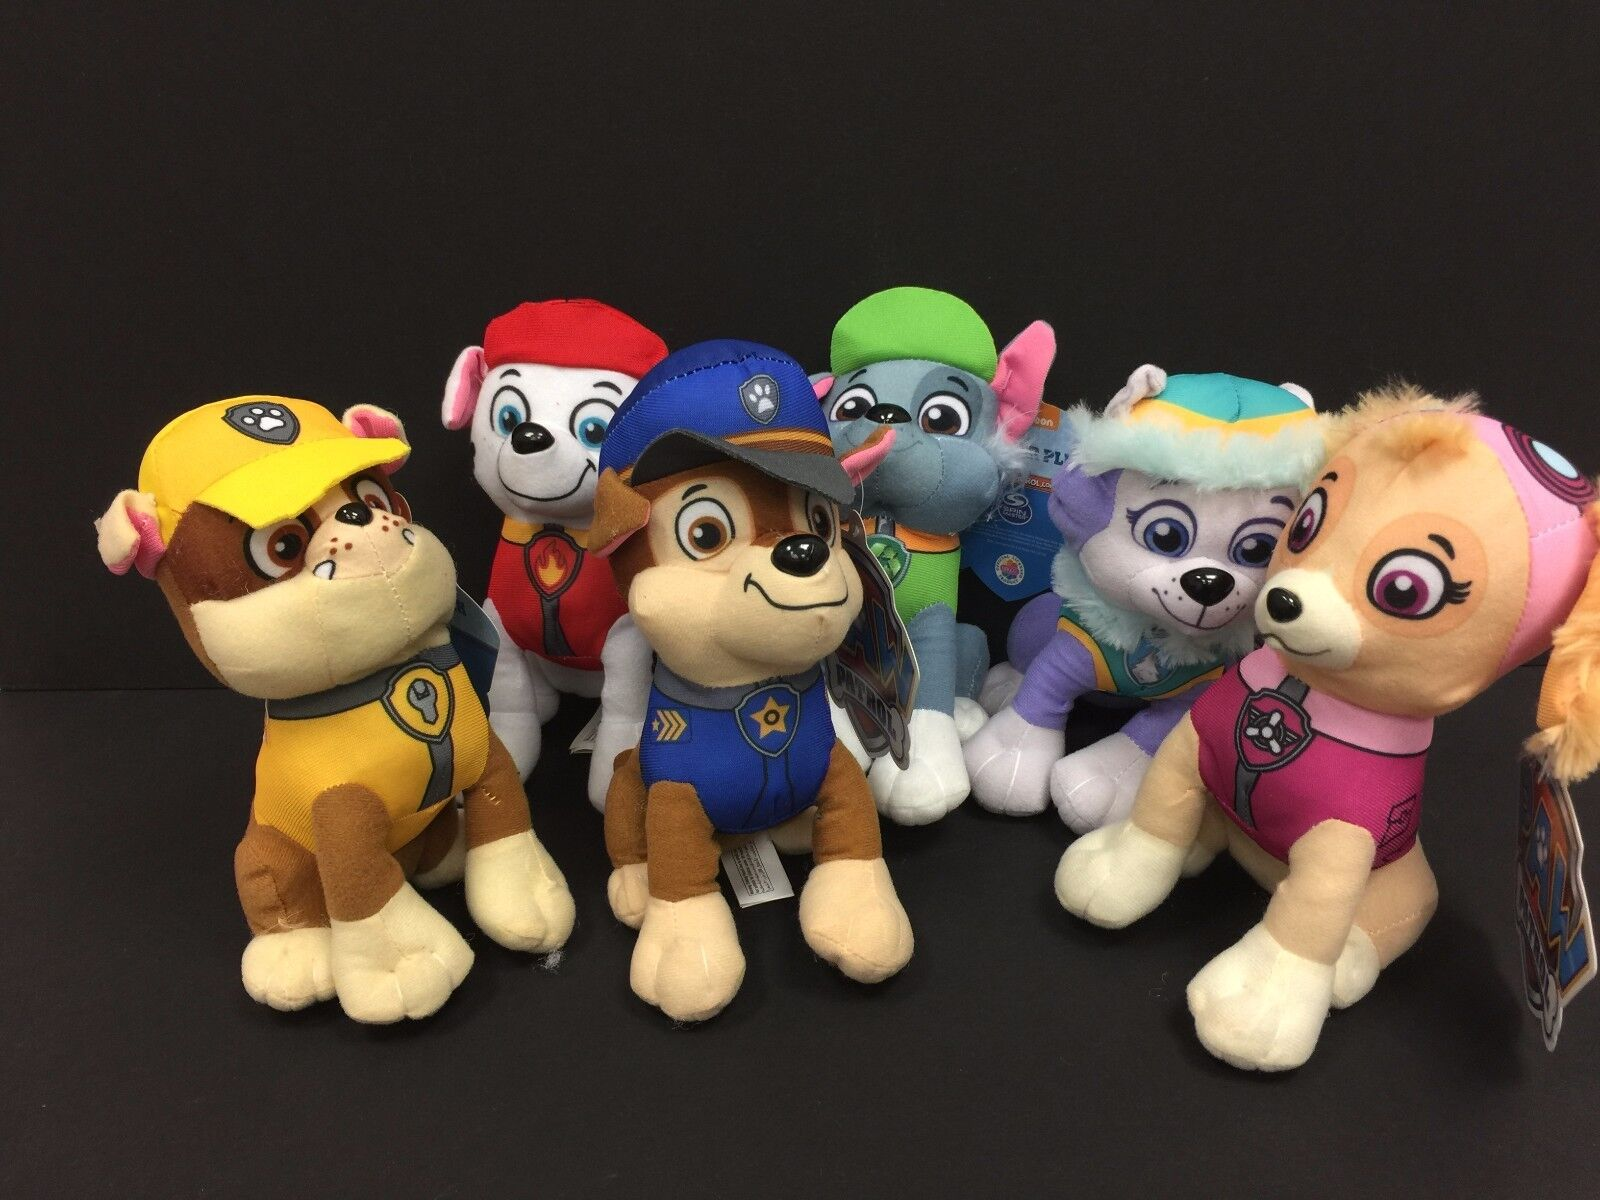 Paw Patrol Plush Stuffed Animal Toy Set - 10""